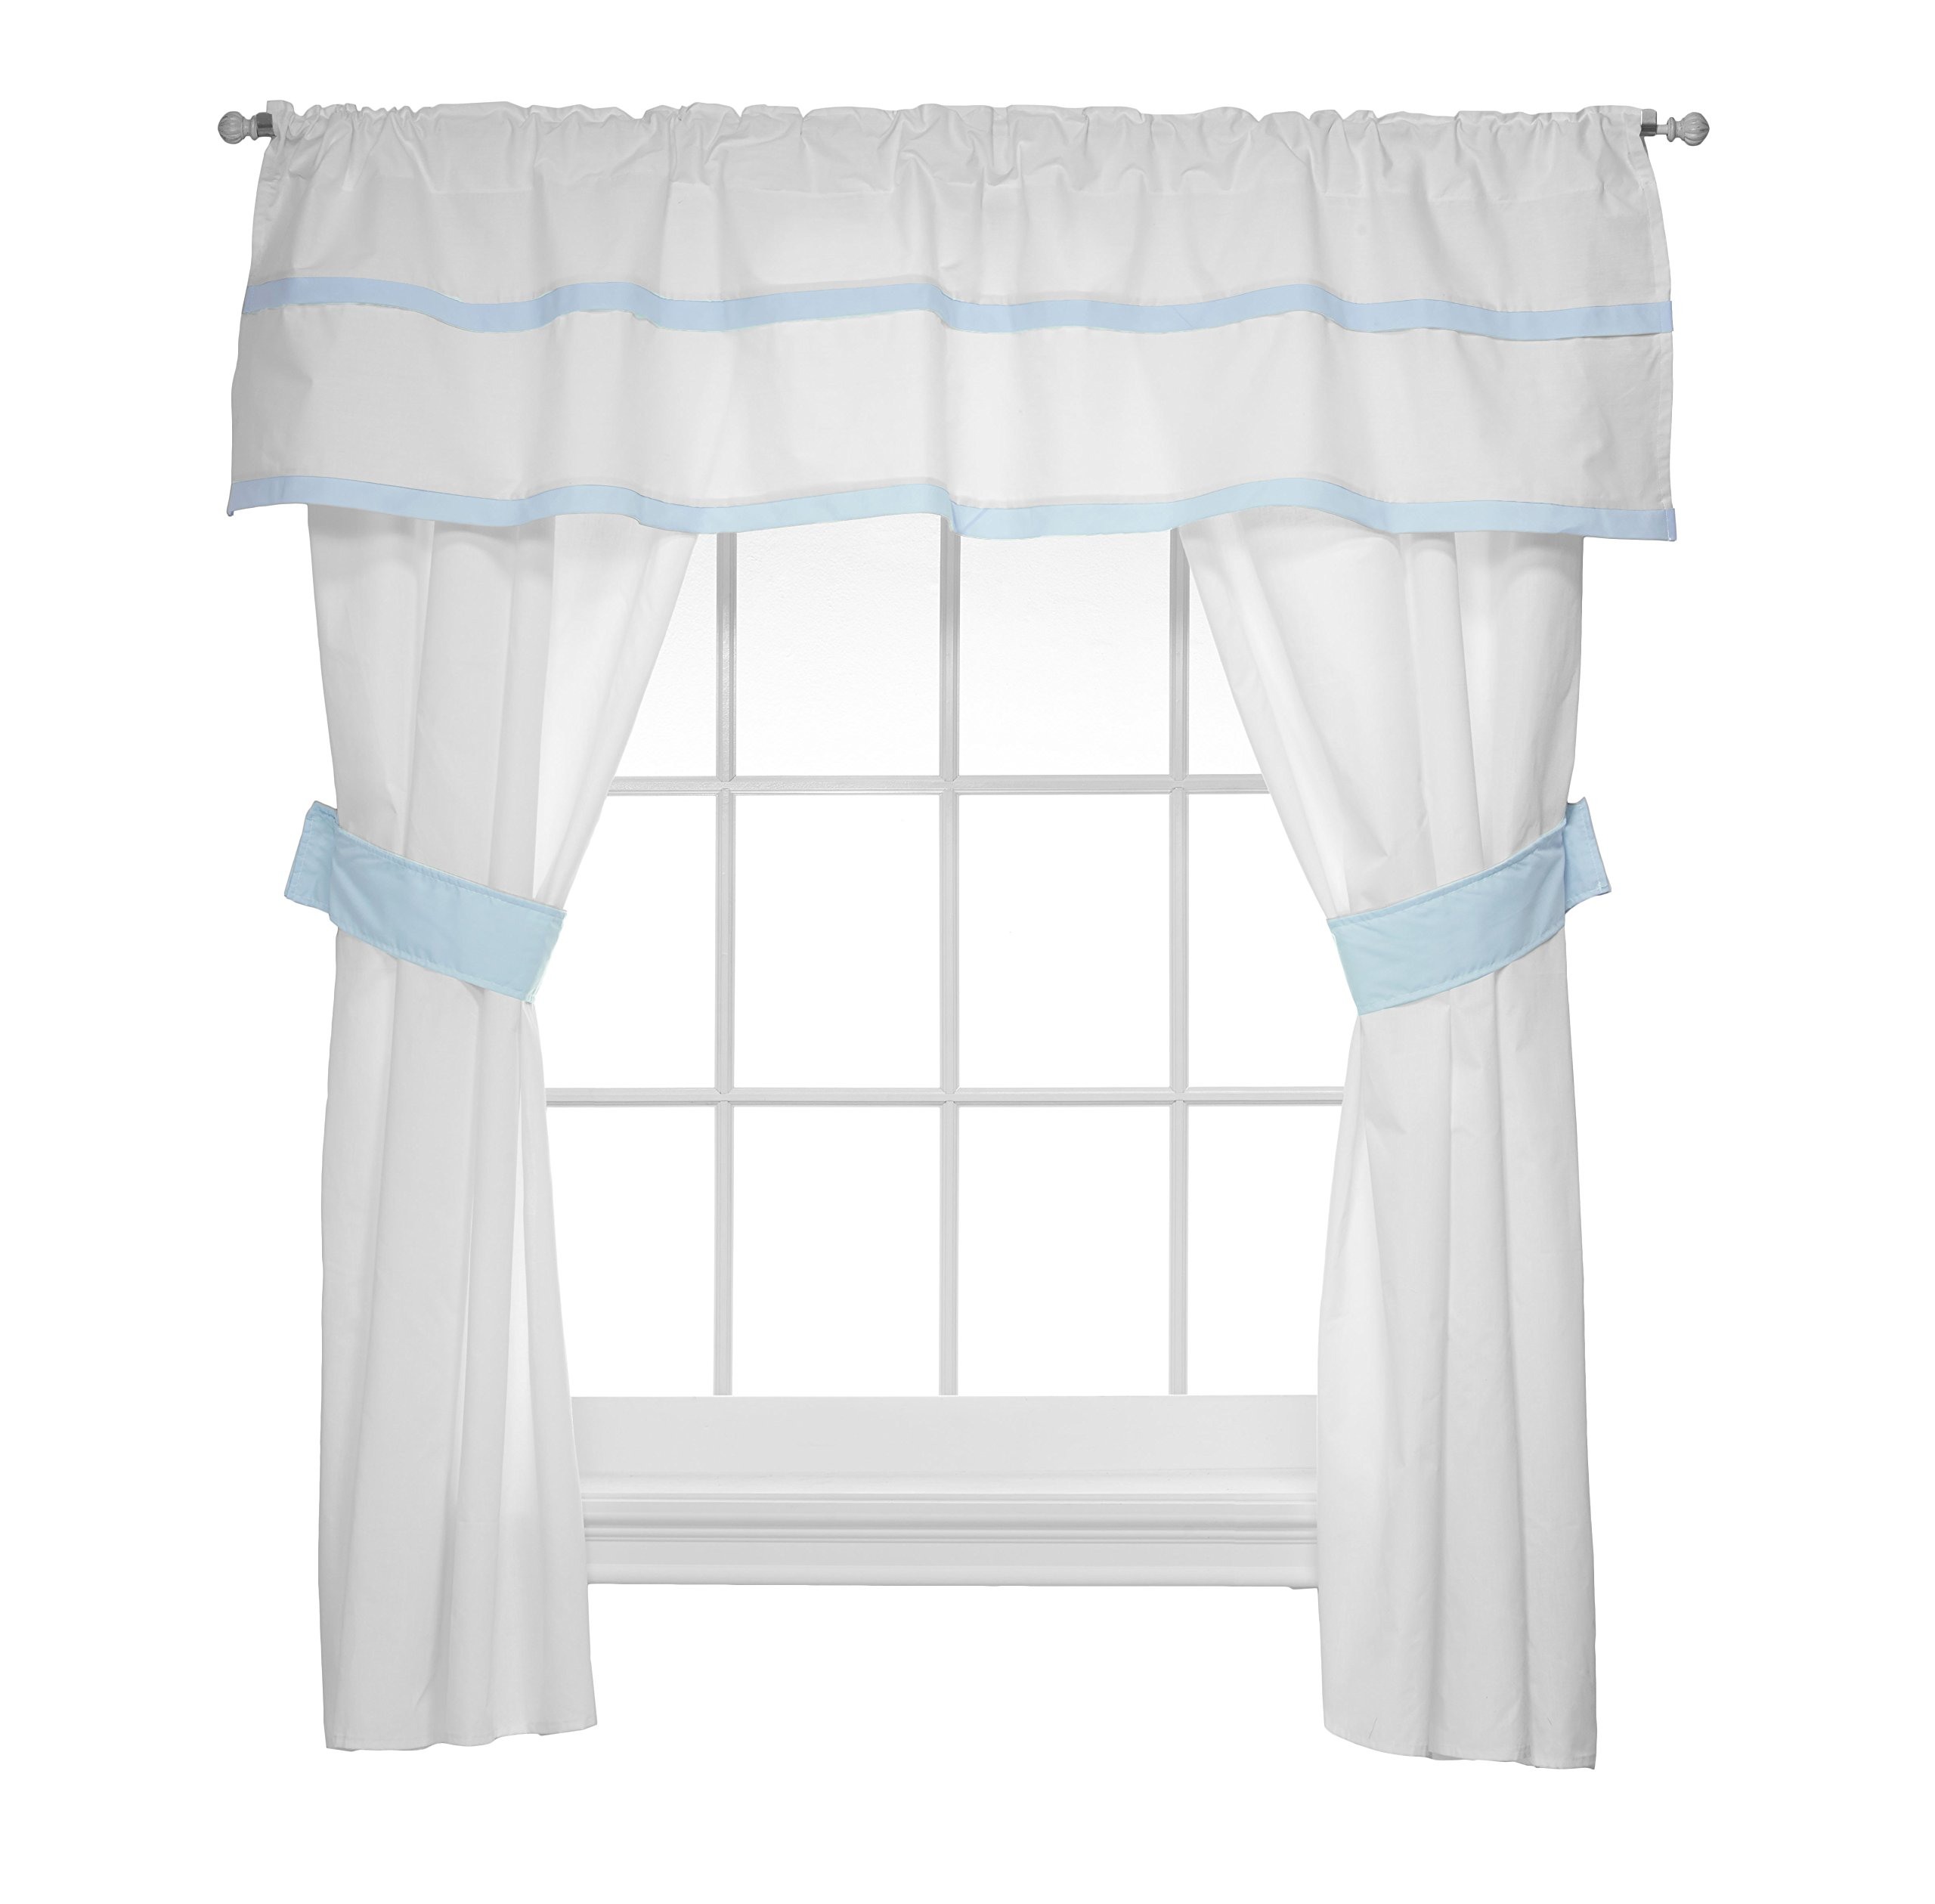 Baby Doll Medallion 5 Piece Window Valance and Curtain Set, Blue by BabyDoll Bedding